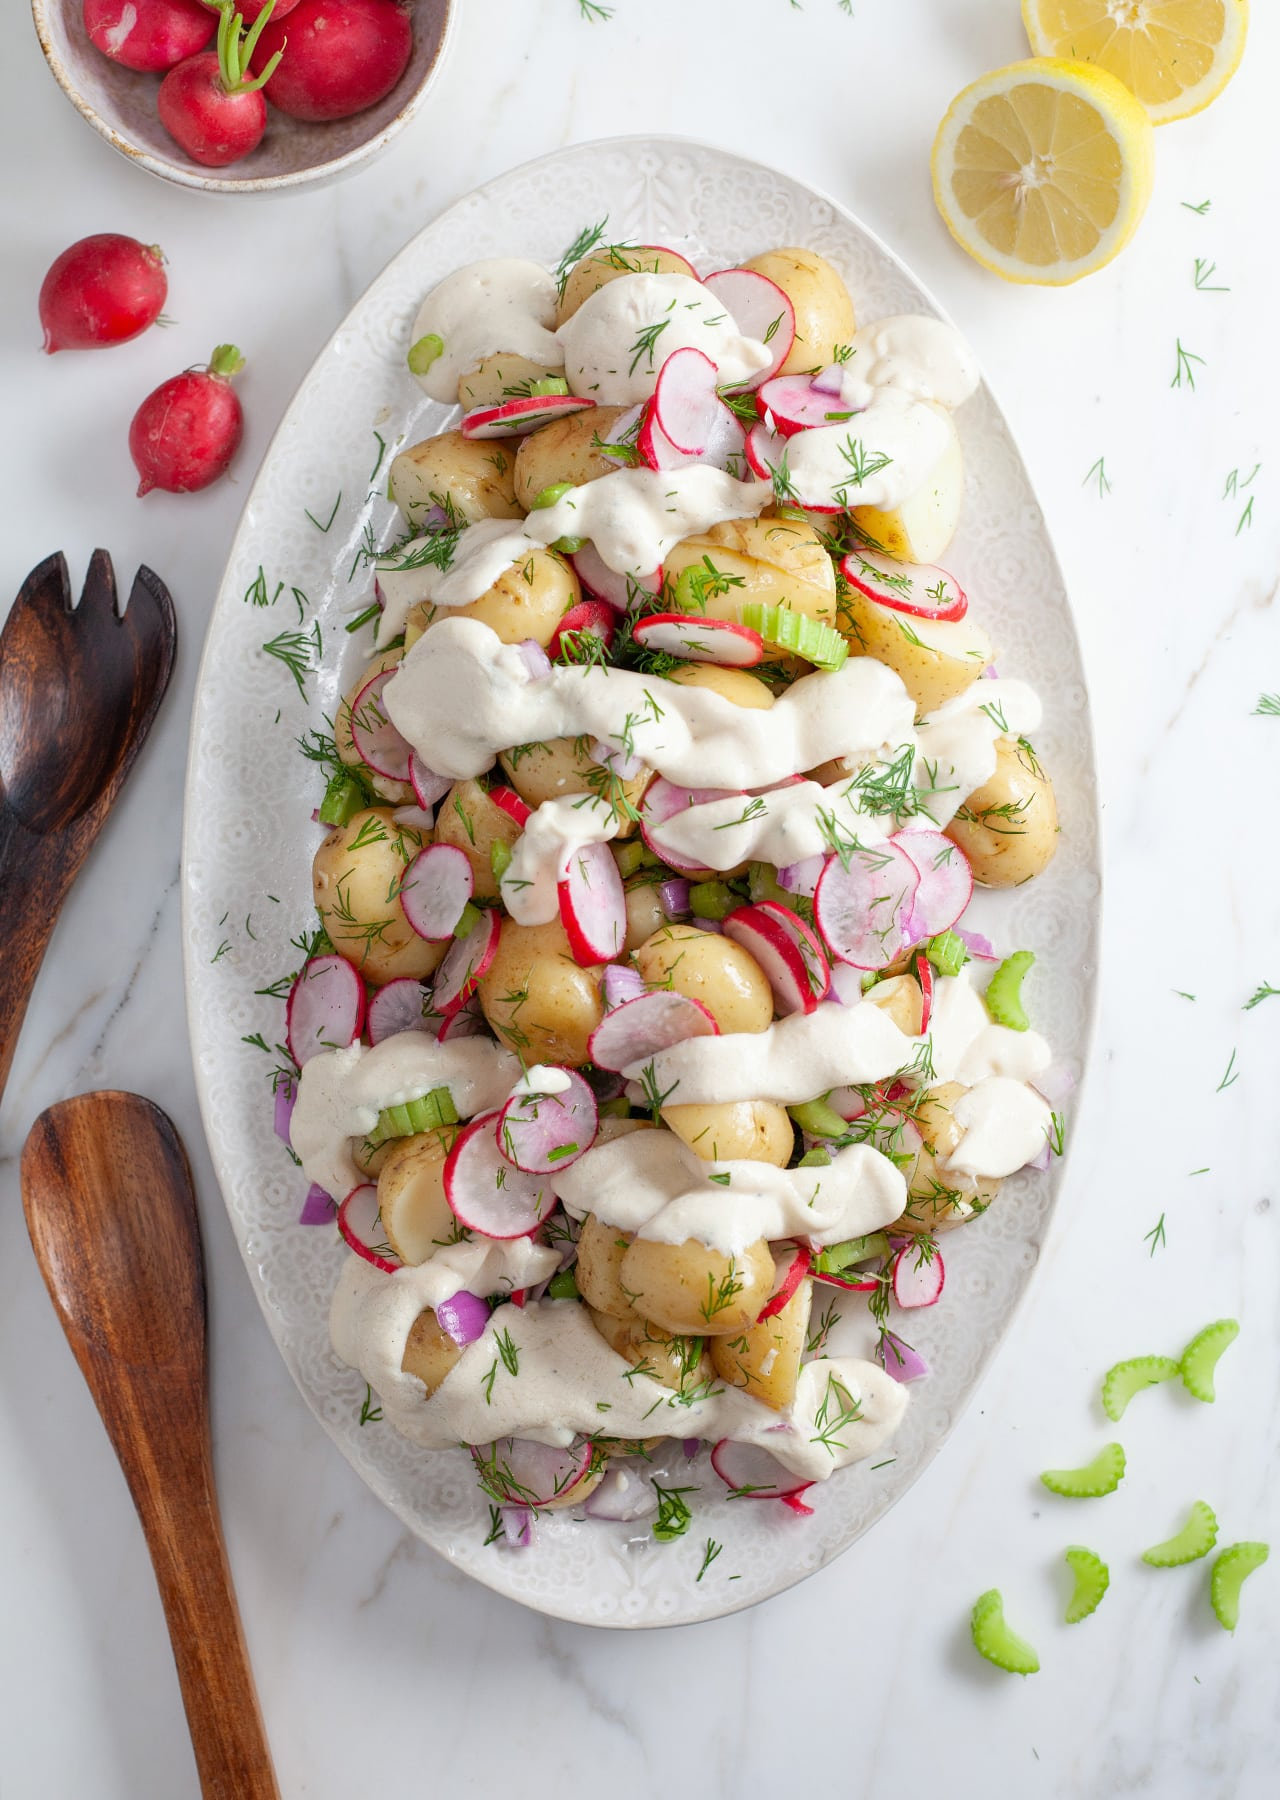 Vegan Creamy Potato & Dill Salad